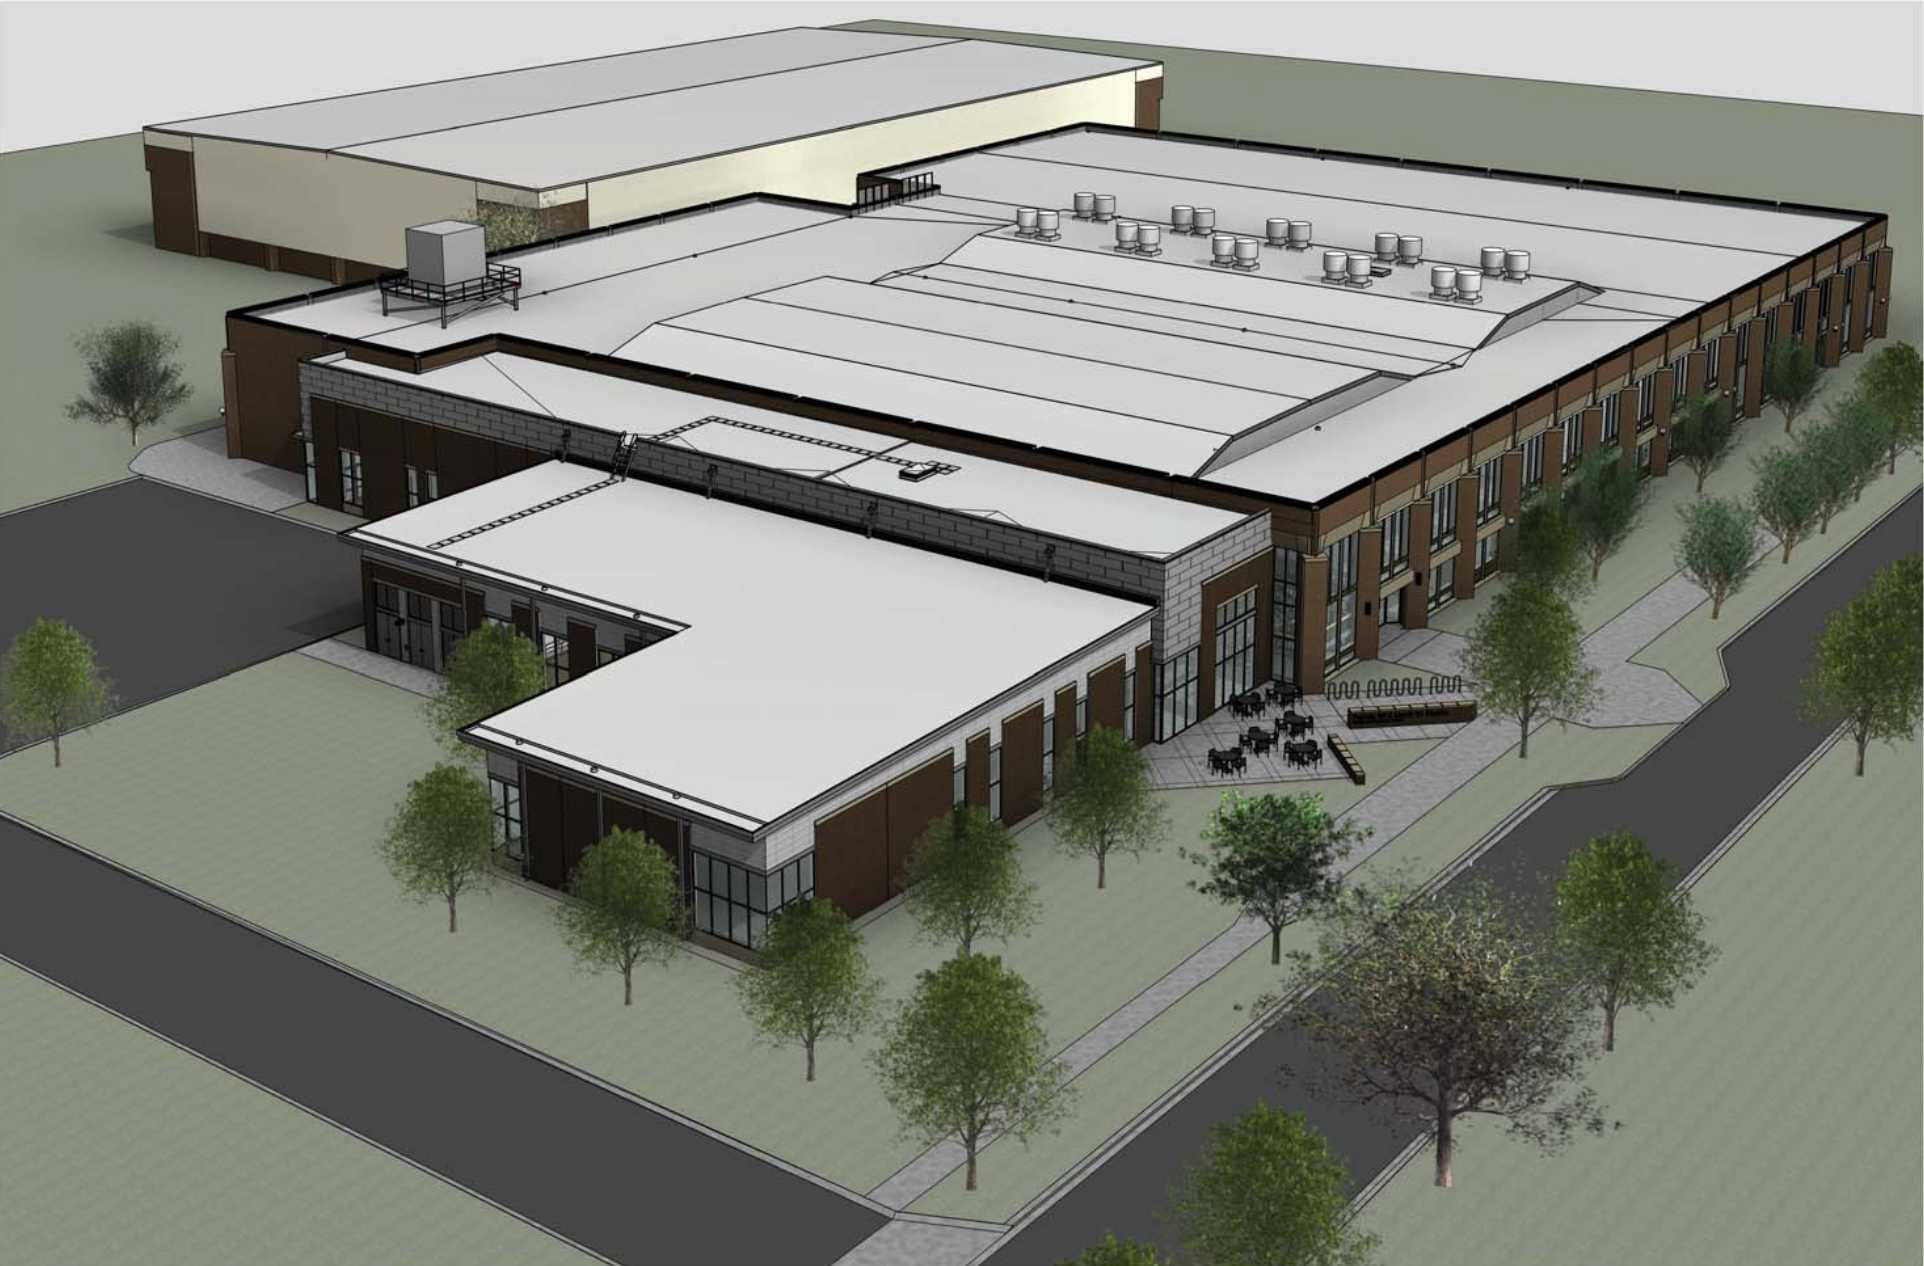 A model of the recently approved expansion of Philips gym. The expansion will include several new fitness rooms and a renovation of Carr Pool.